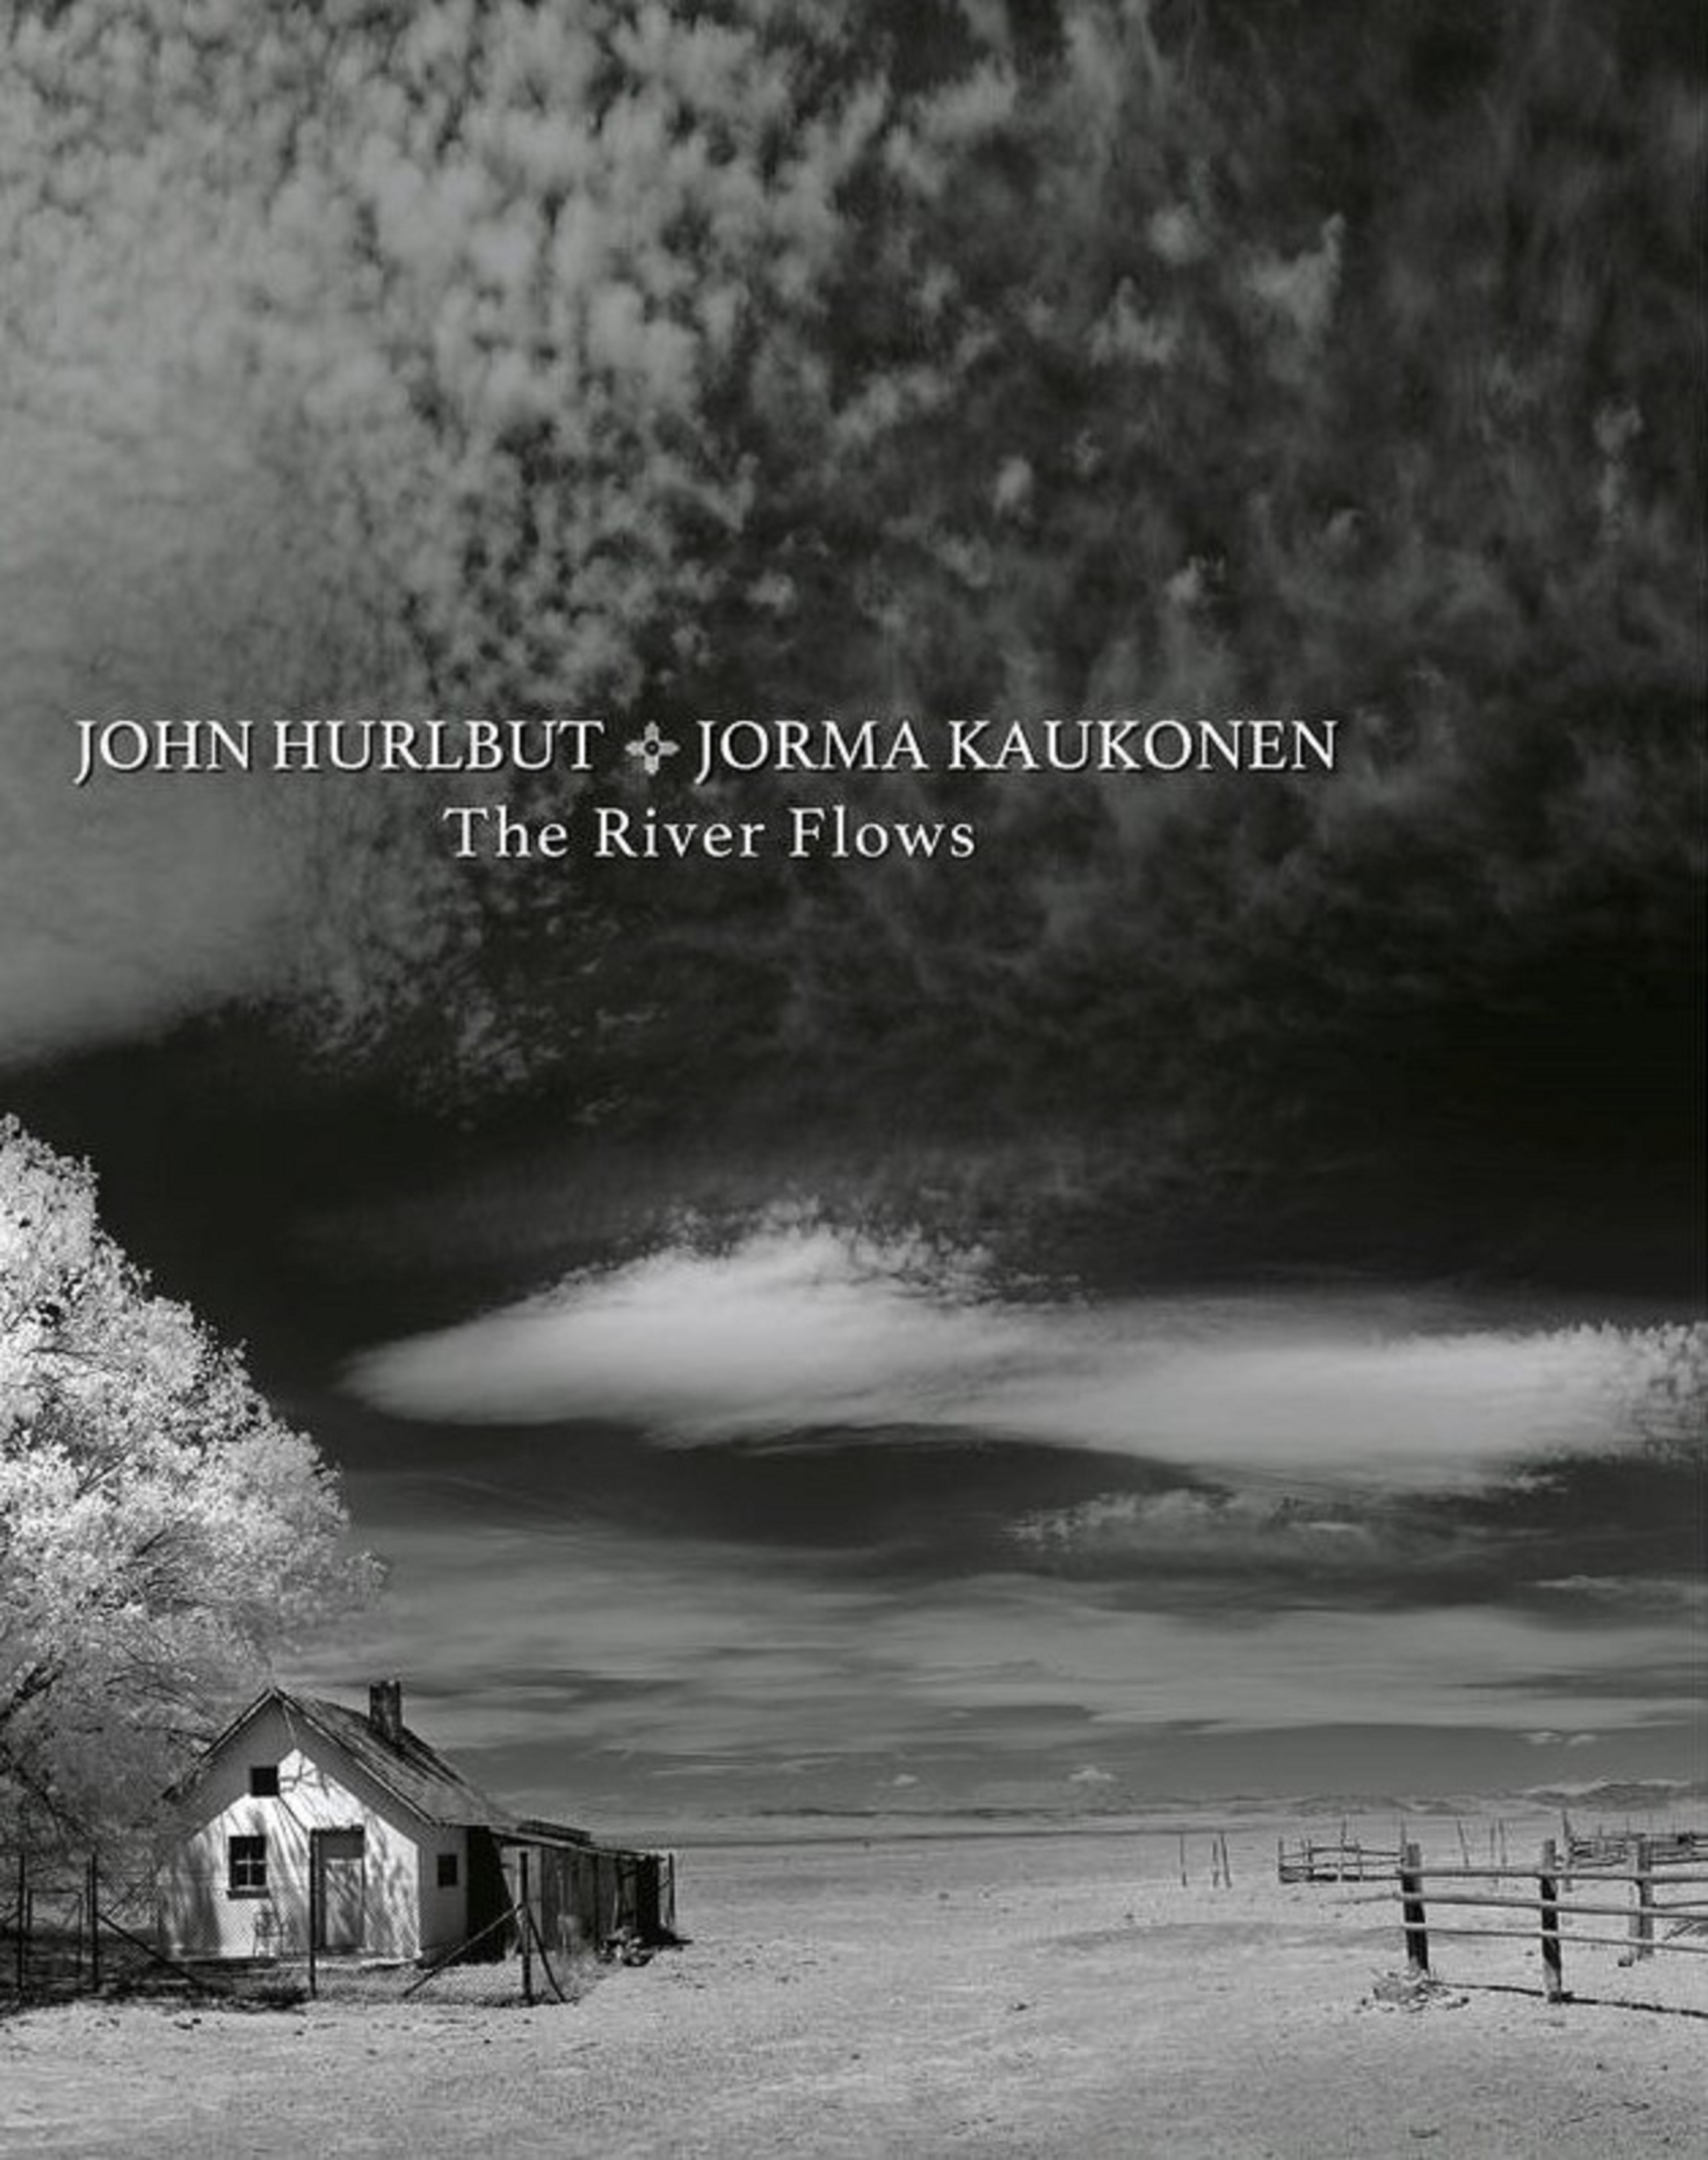 John Hurlbut & Jorma Kaukonen | The River Flows | Review